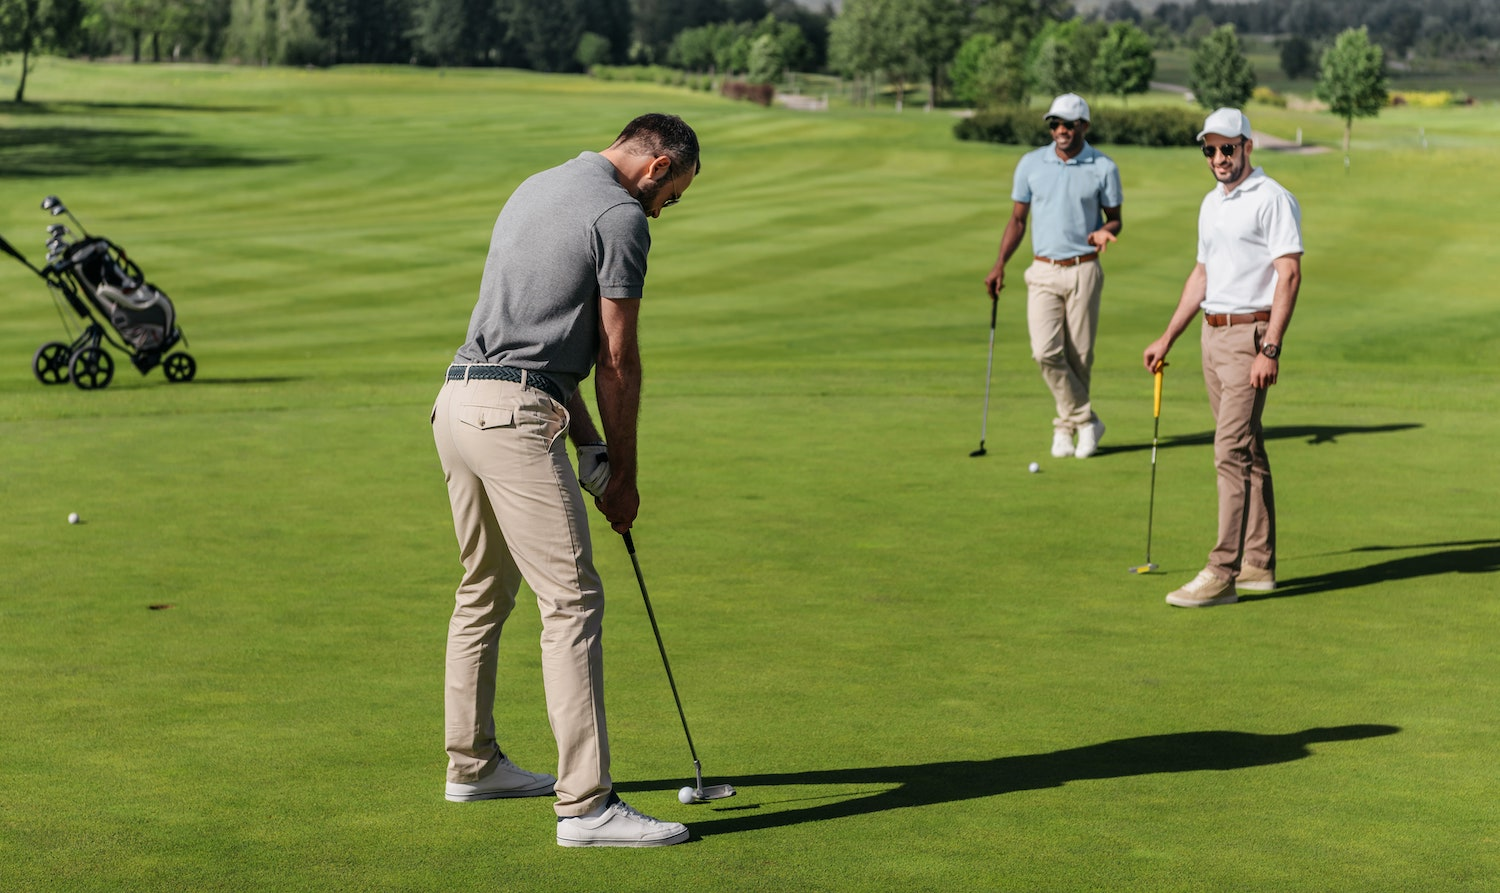 Five Fun Golf Games You Can Play with a Foursome - Minutegolf - Online golf  reservations